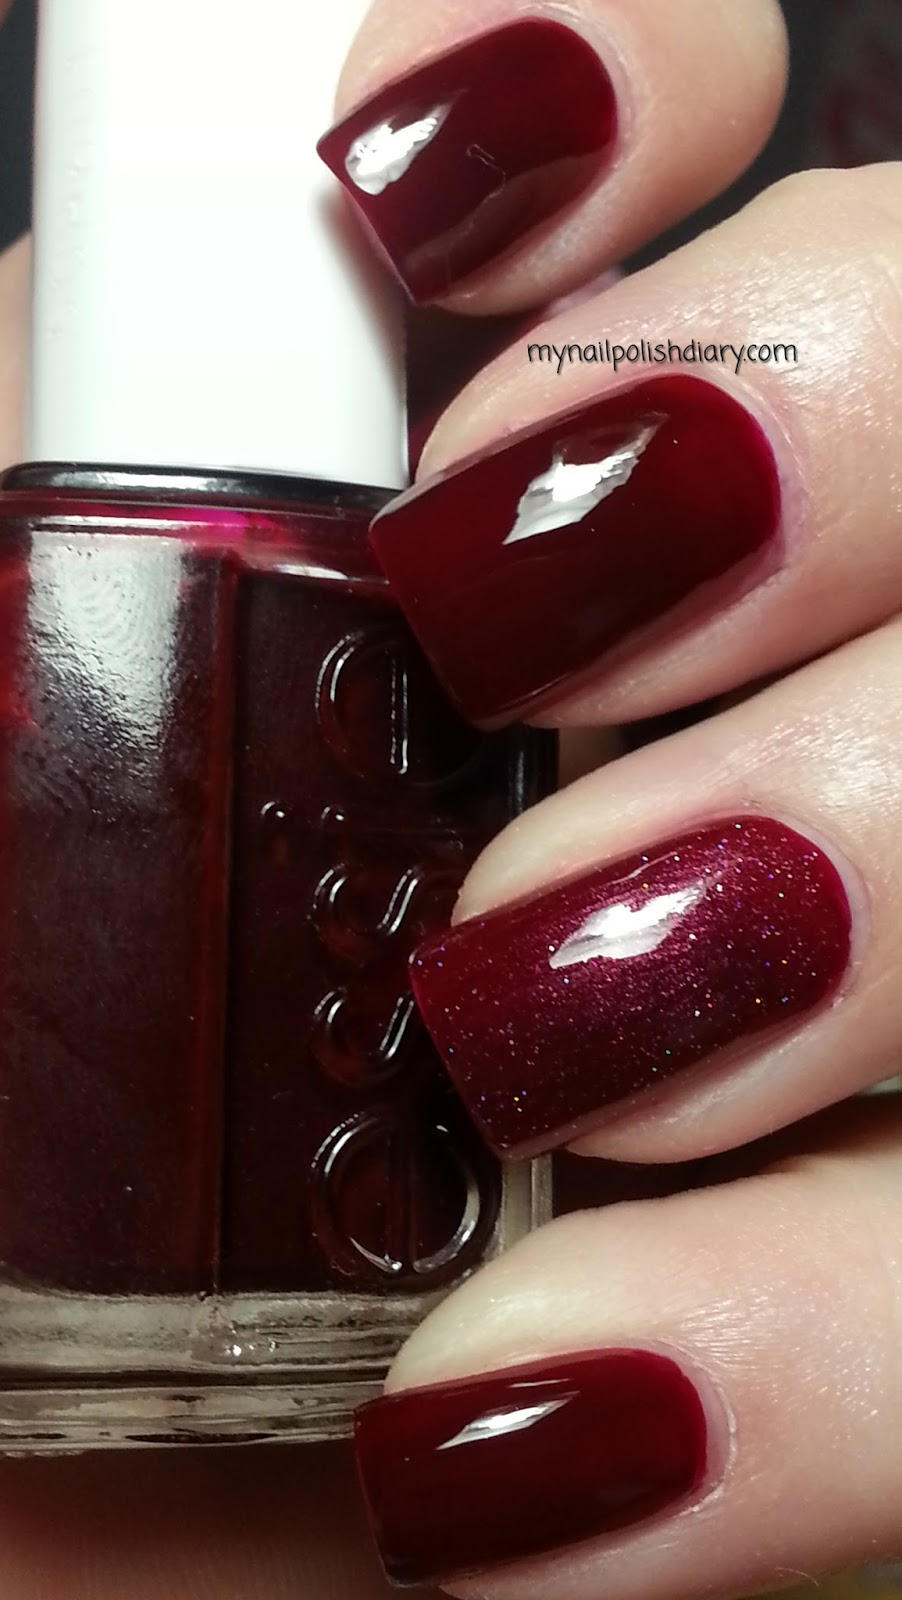 My Nail Polish Diary: Essie Bordeaux with China Glaze Crystal Ball